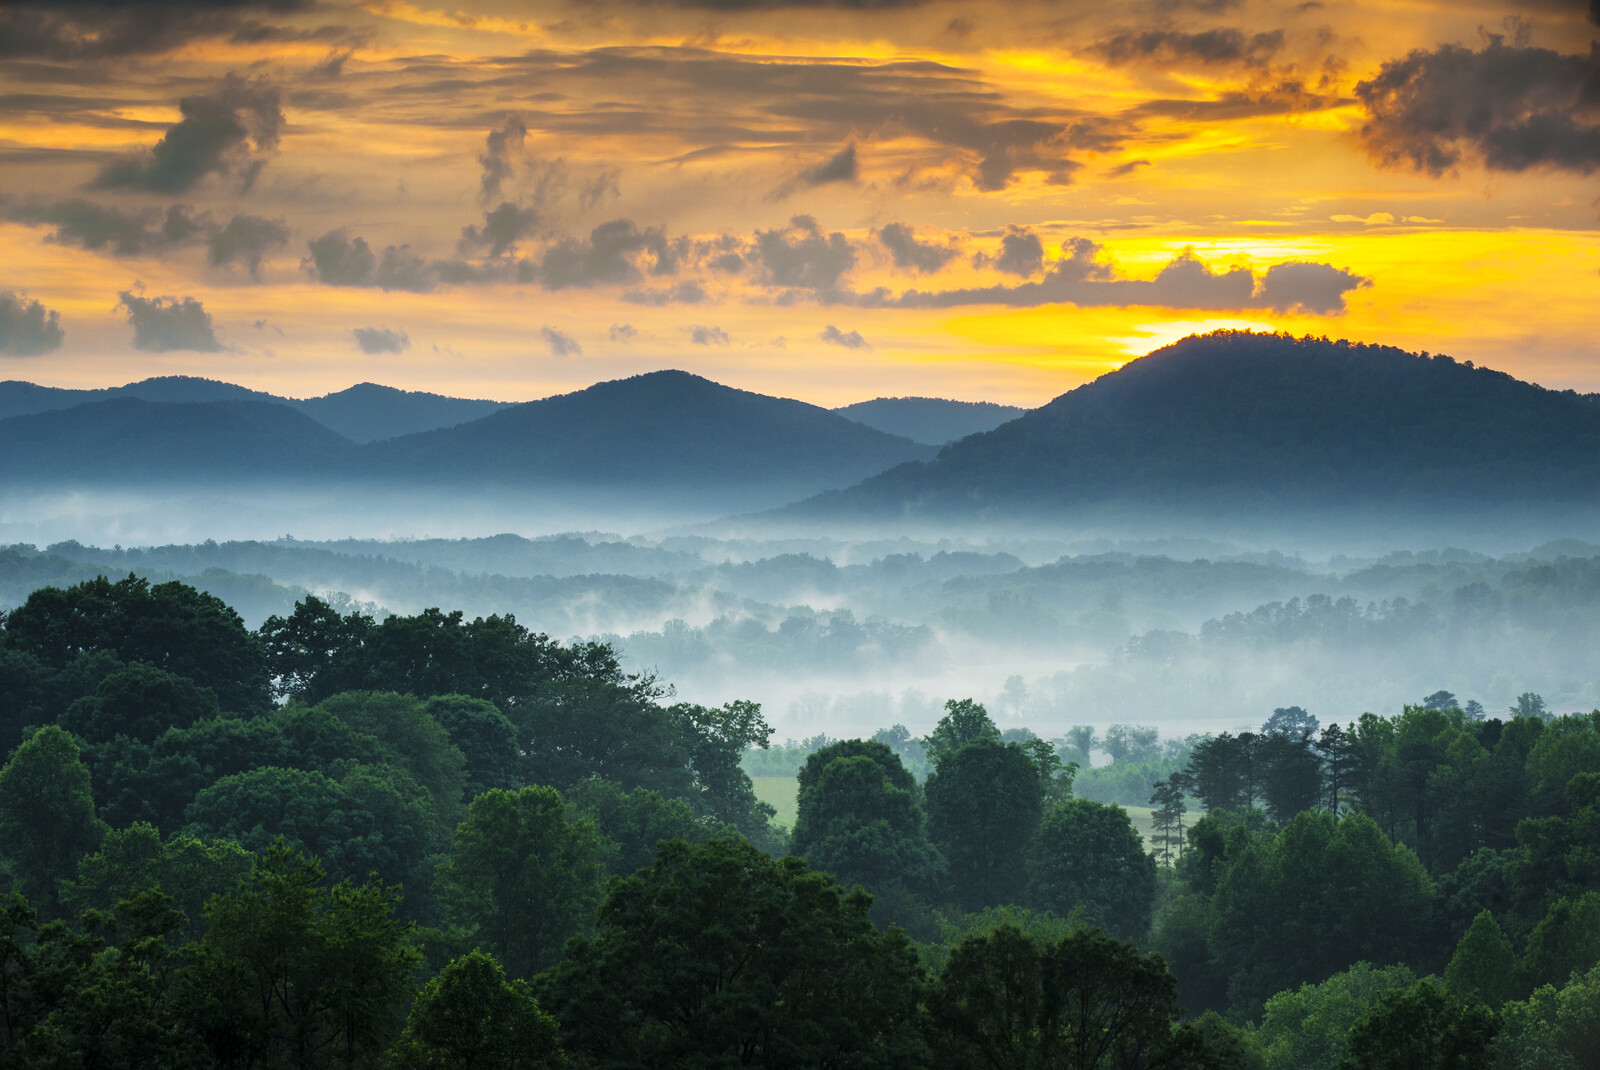 Asheville North Carolina Blue Ridge Mountains at Sunset with a Foggy Landscape and in the front green tree tops